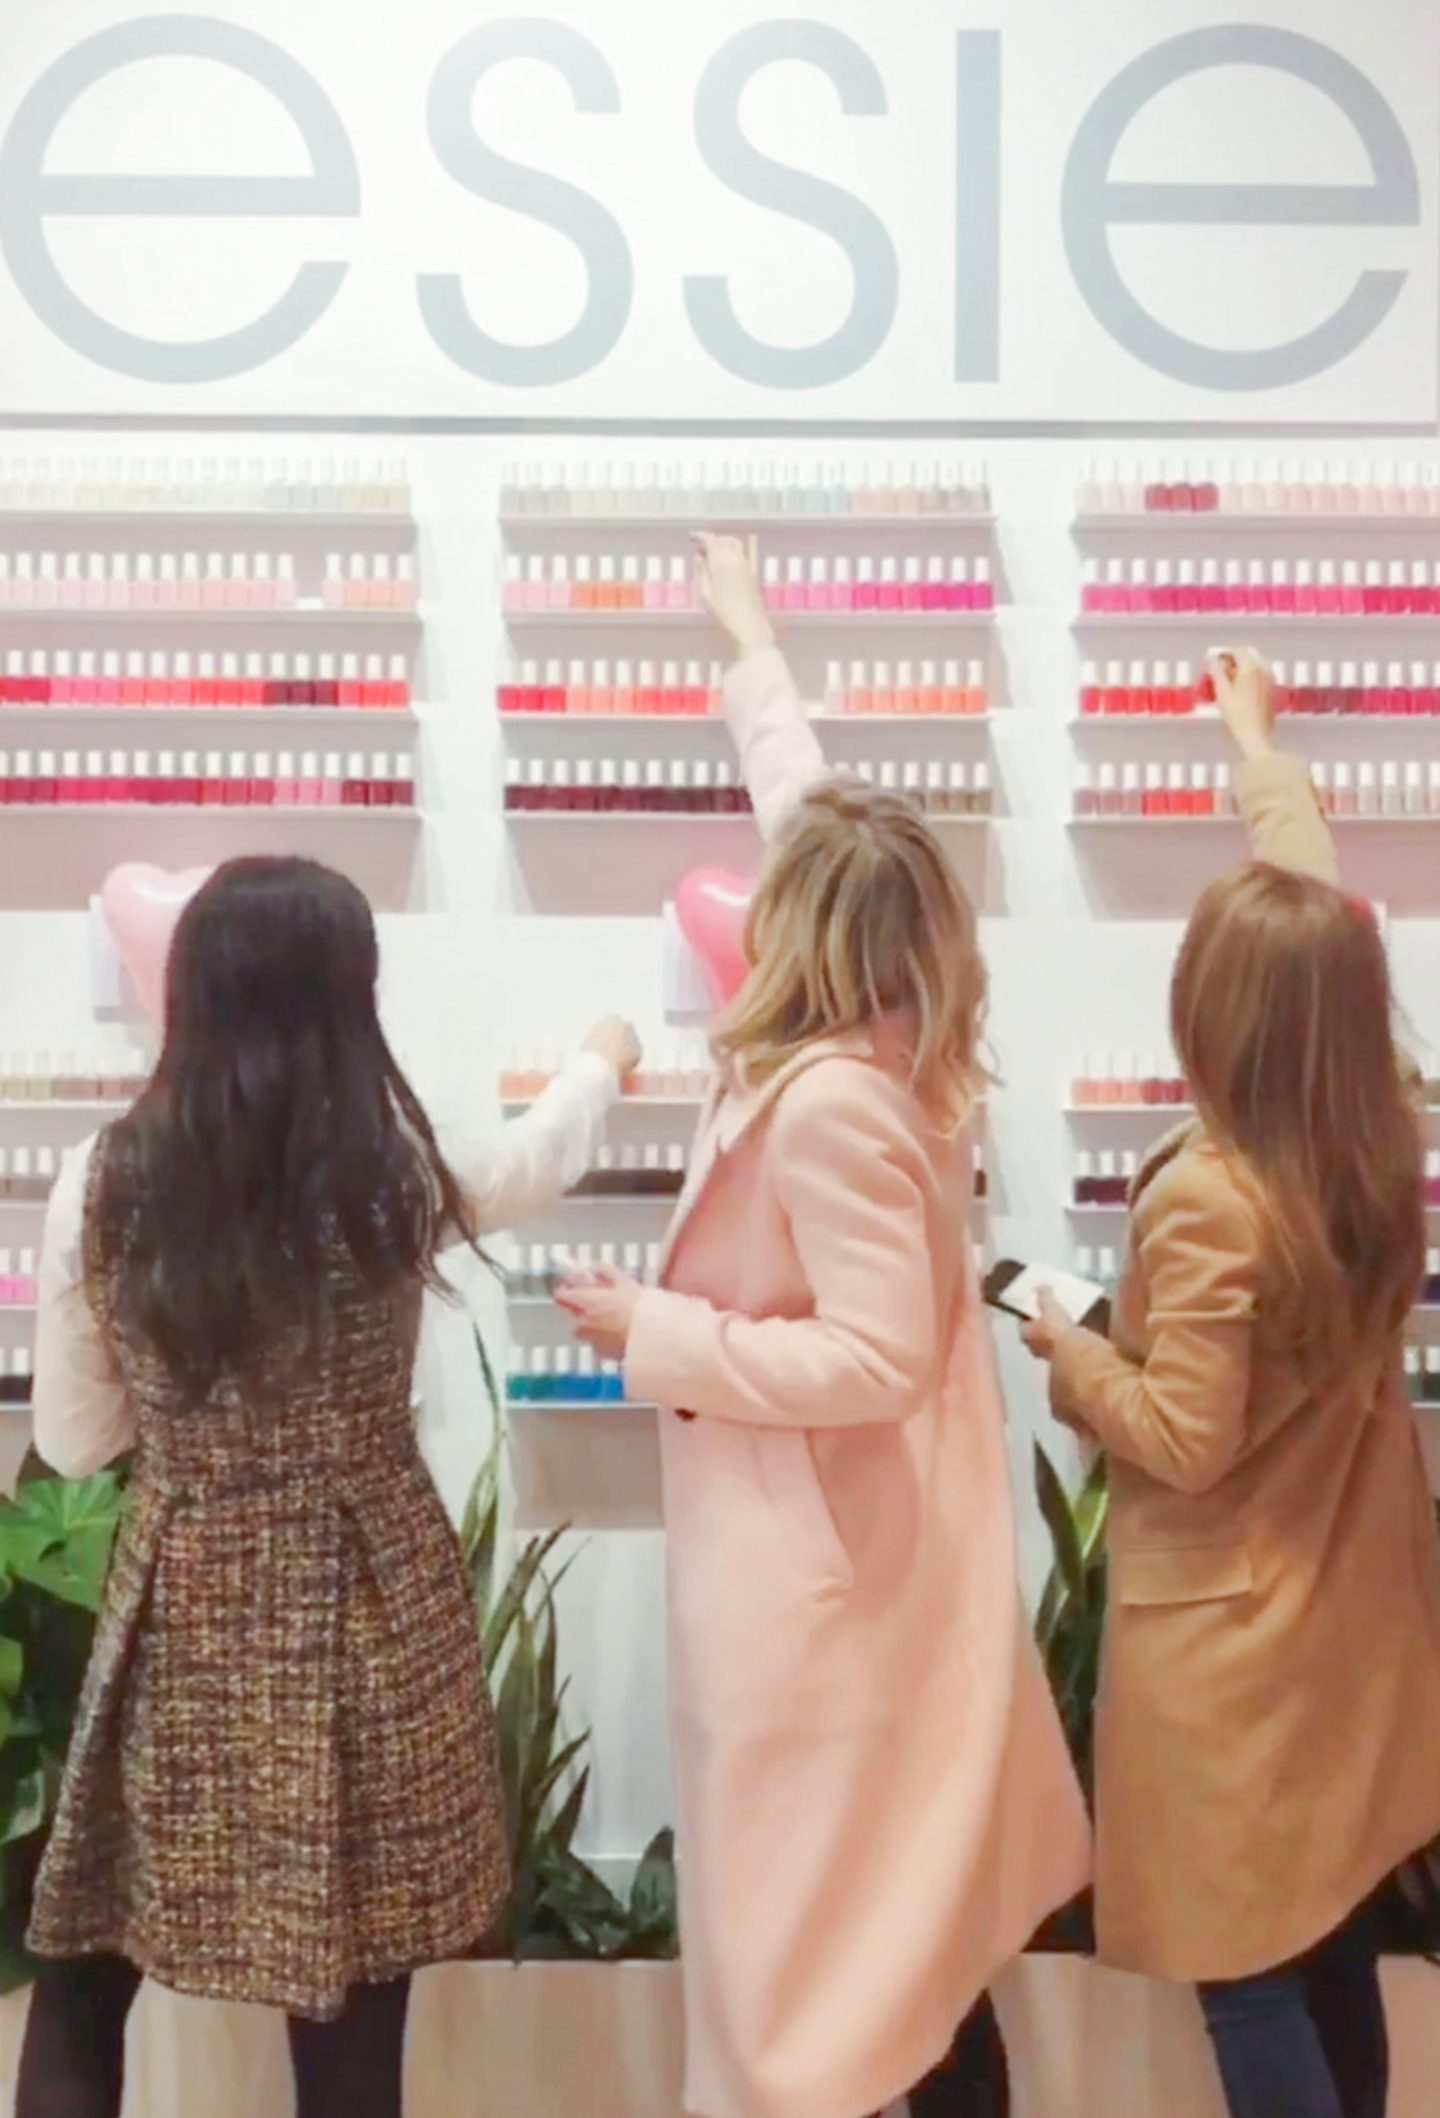 Ashley Brooke, Carly, and Mackenzie Horan at ESSIE event in NYC